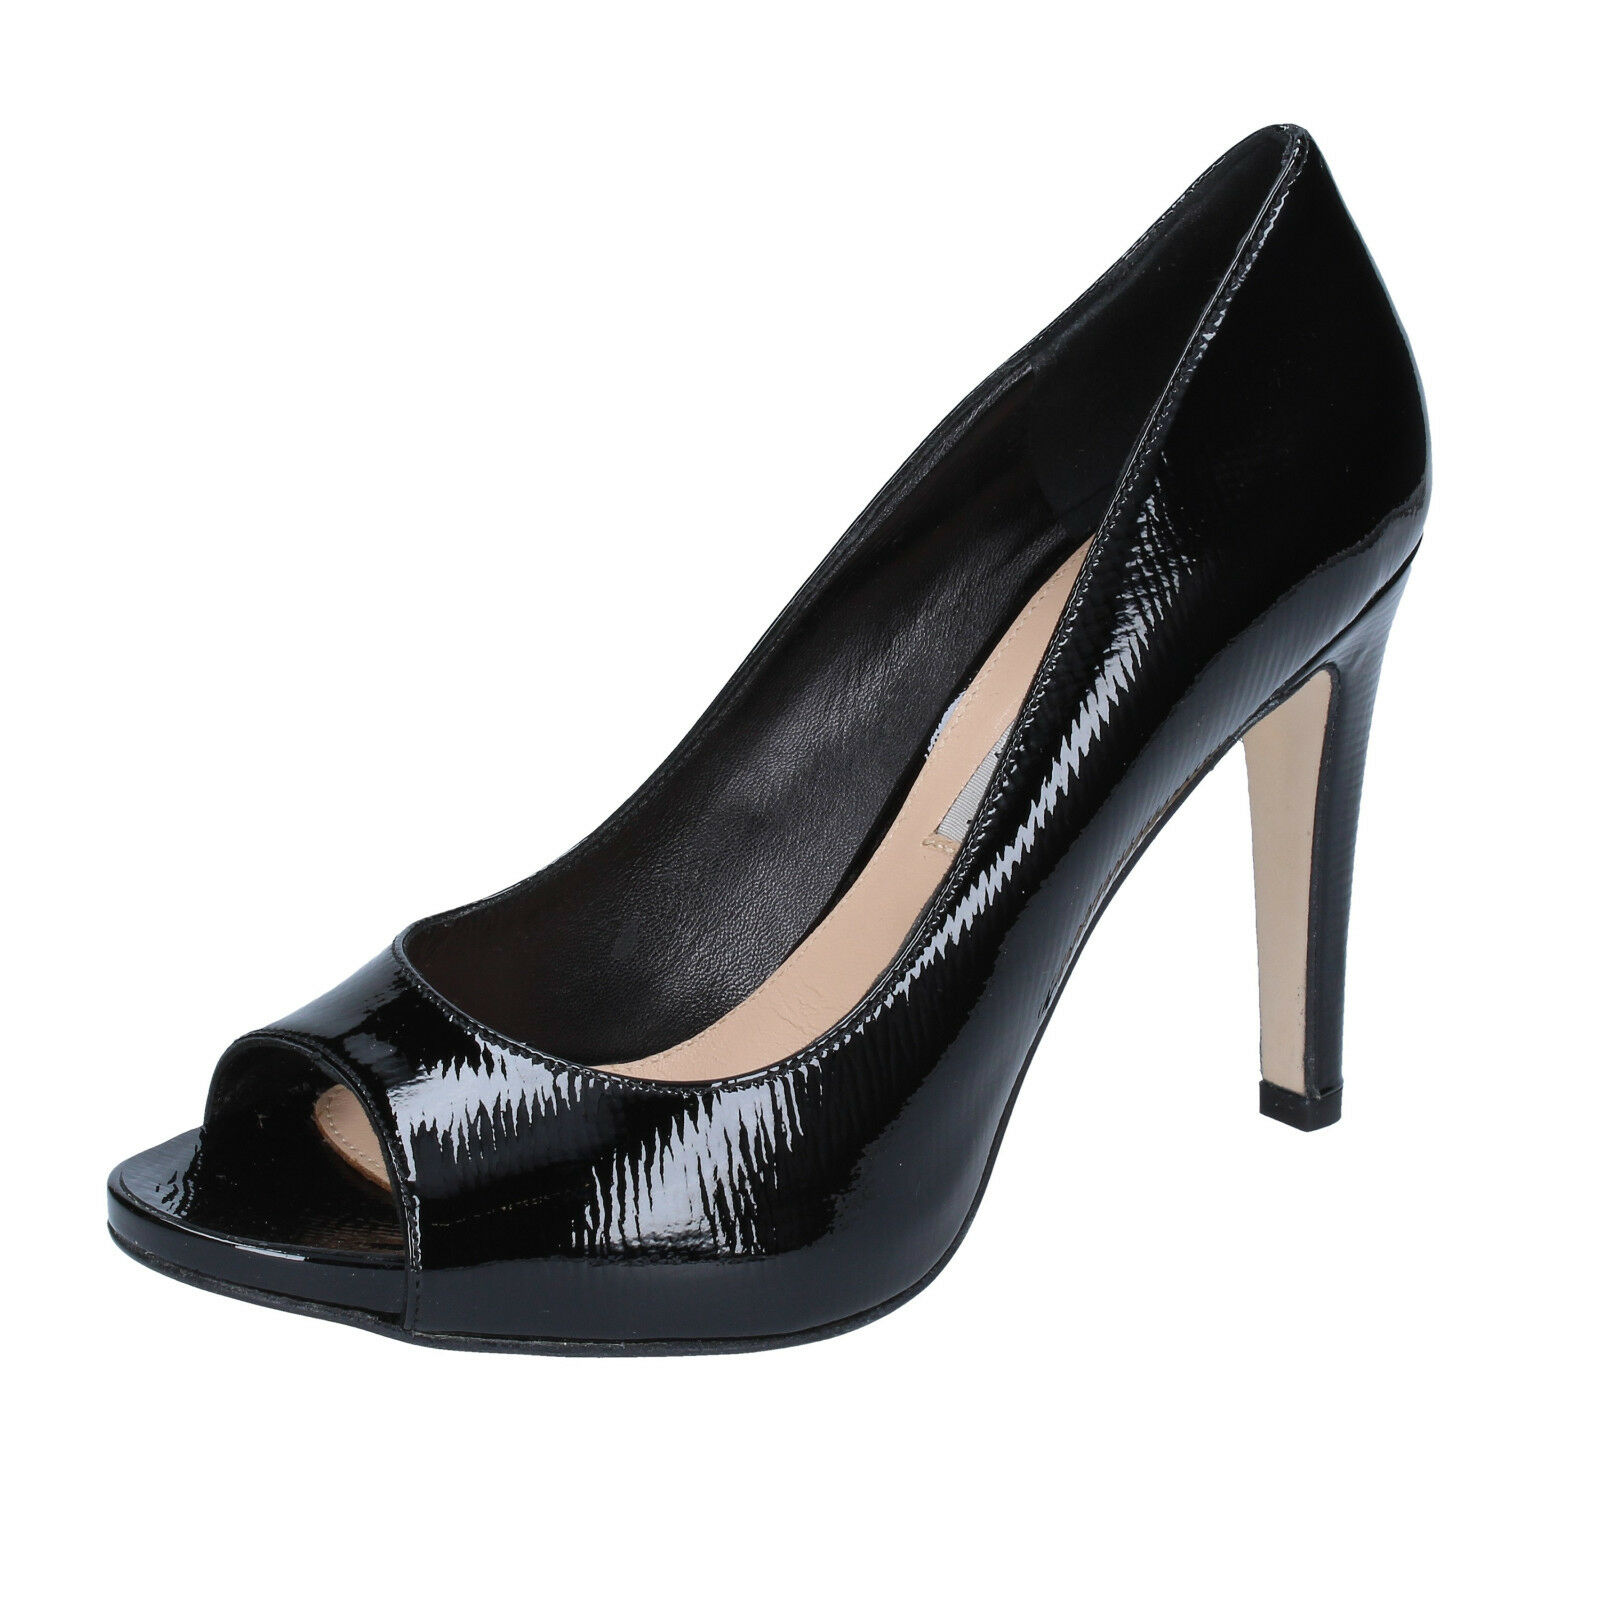 Scarpe donna THE vernice SELLER 37,5 decolte nero vernice THE BZ320-F 90fc1b